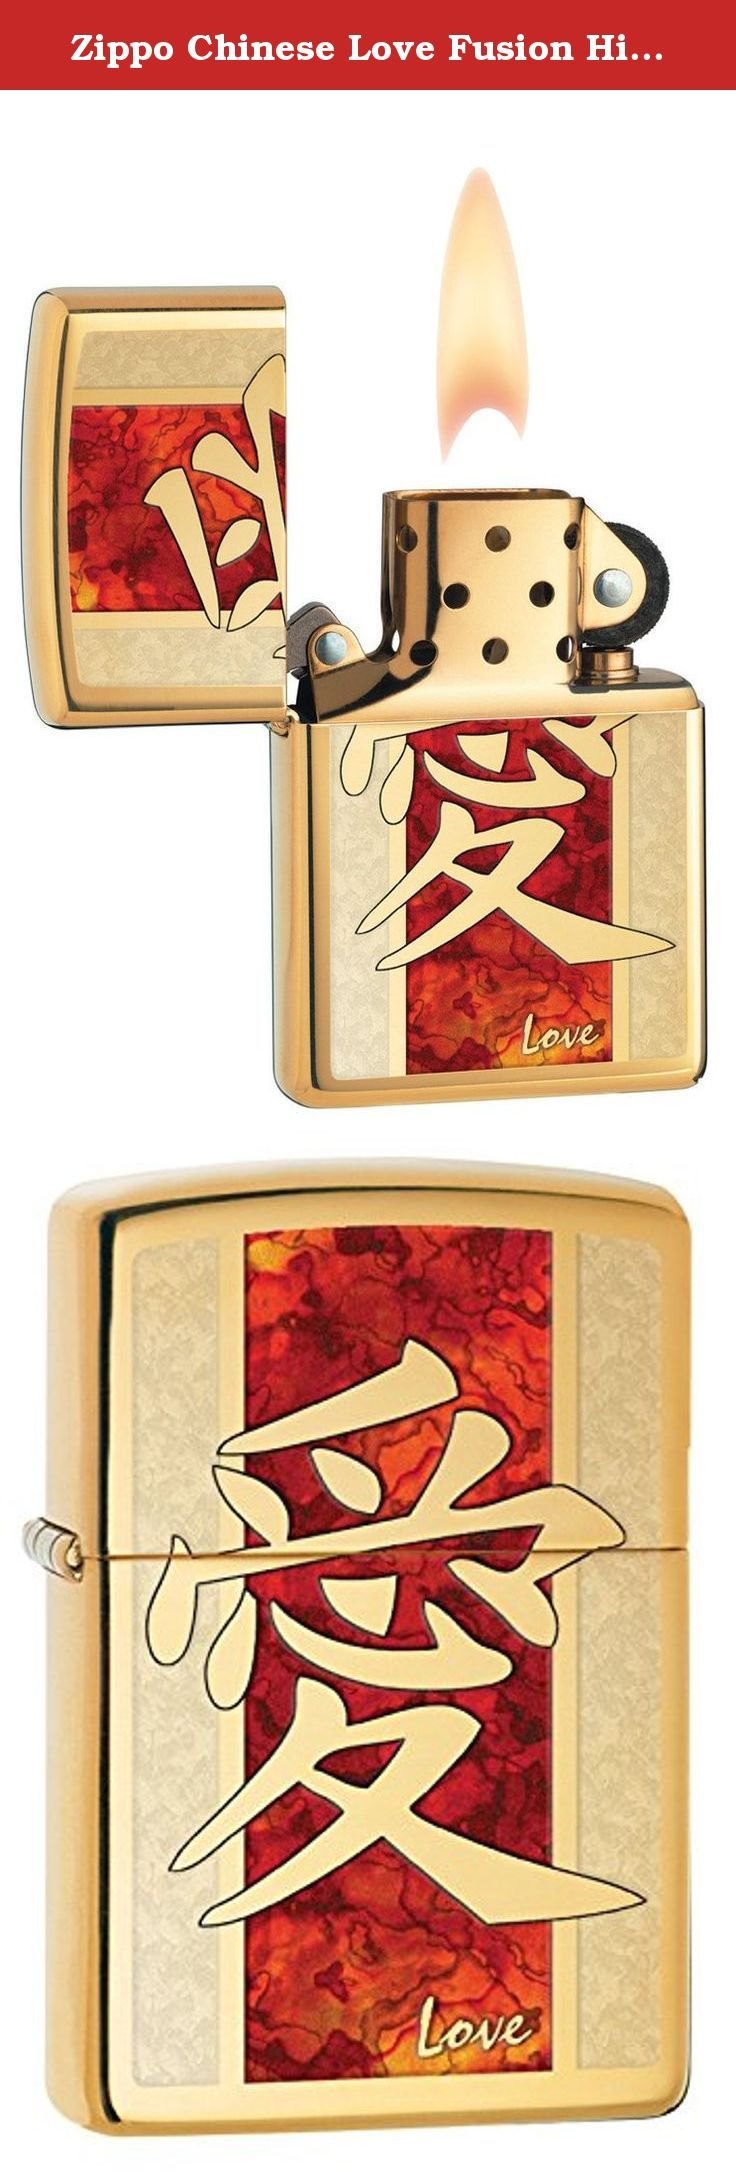 Zippo Chinese Love Fusion High Polish Brass Pocket Lighter. Zippo newest customization, fusion, creates a stained glass-style effect on this high polish brass lighter featuring the Chinese character for love. Comes packaged in an gift box. For optimal performance, use with Zippo premium lighter fluid.; for optimum performance of every Zippo windproof lighter, we recommend genuine Zippo premium lighter fluid, flints, and wicks.